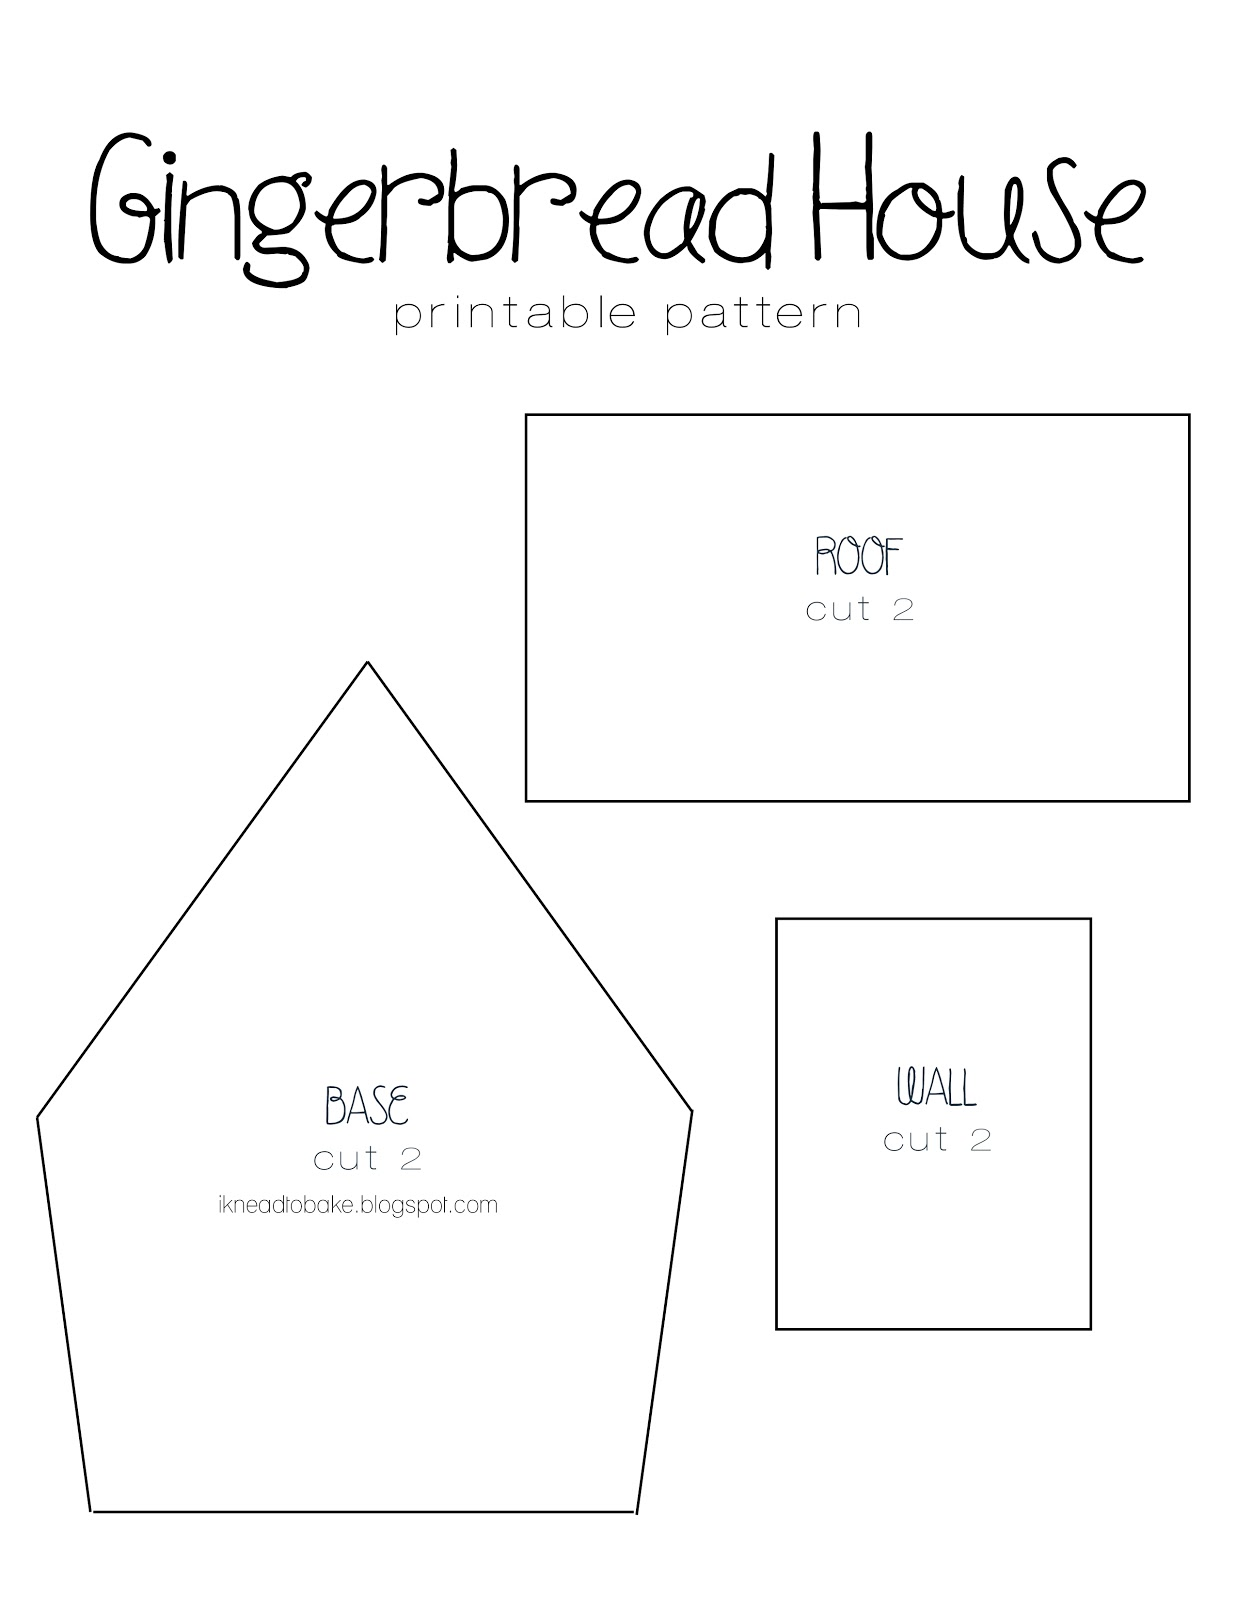 I knead to bake gingerbread recipe printable house template House design templates